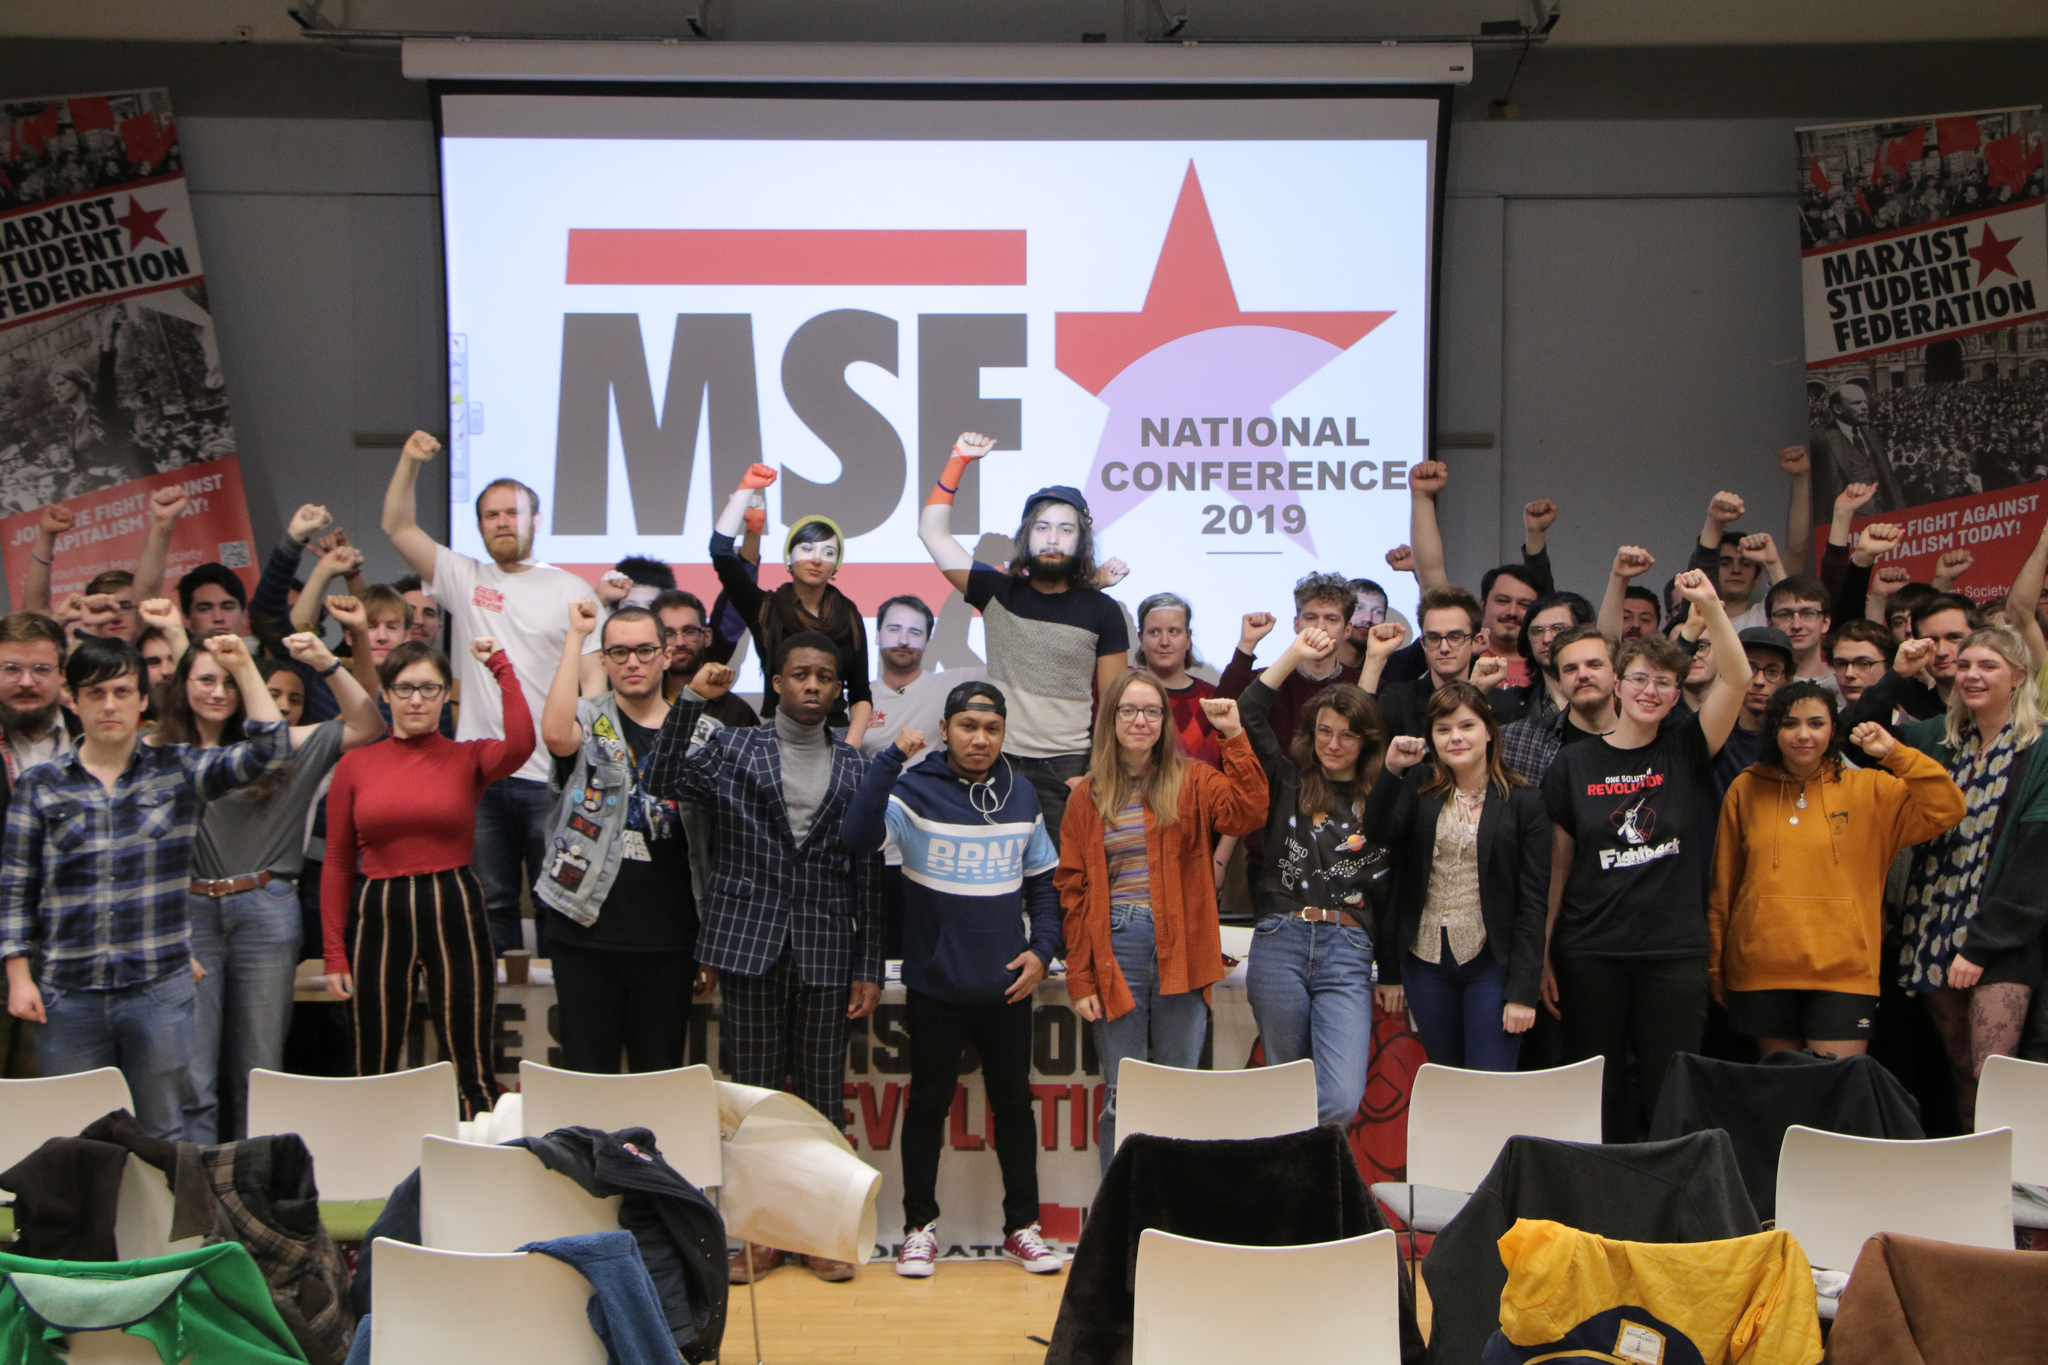 Britain: Marxist Student Federation on the rise